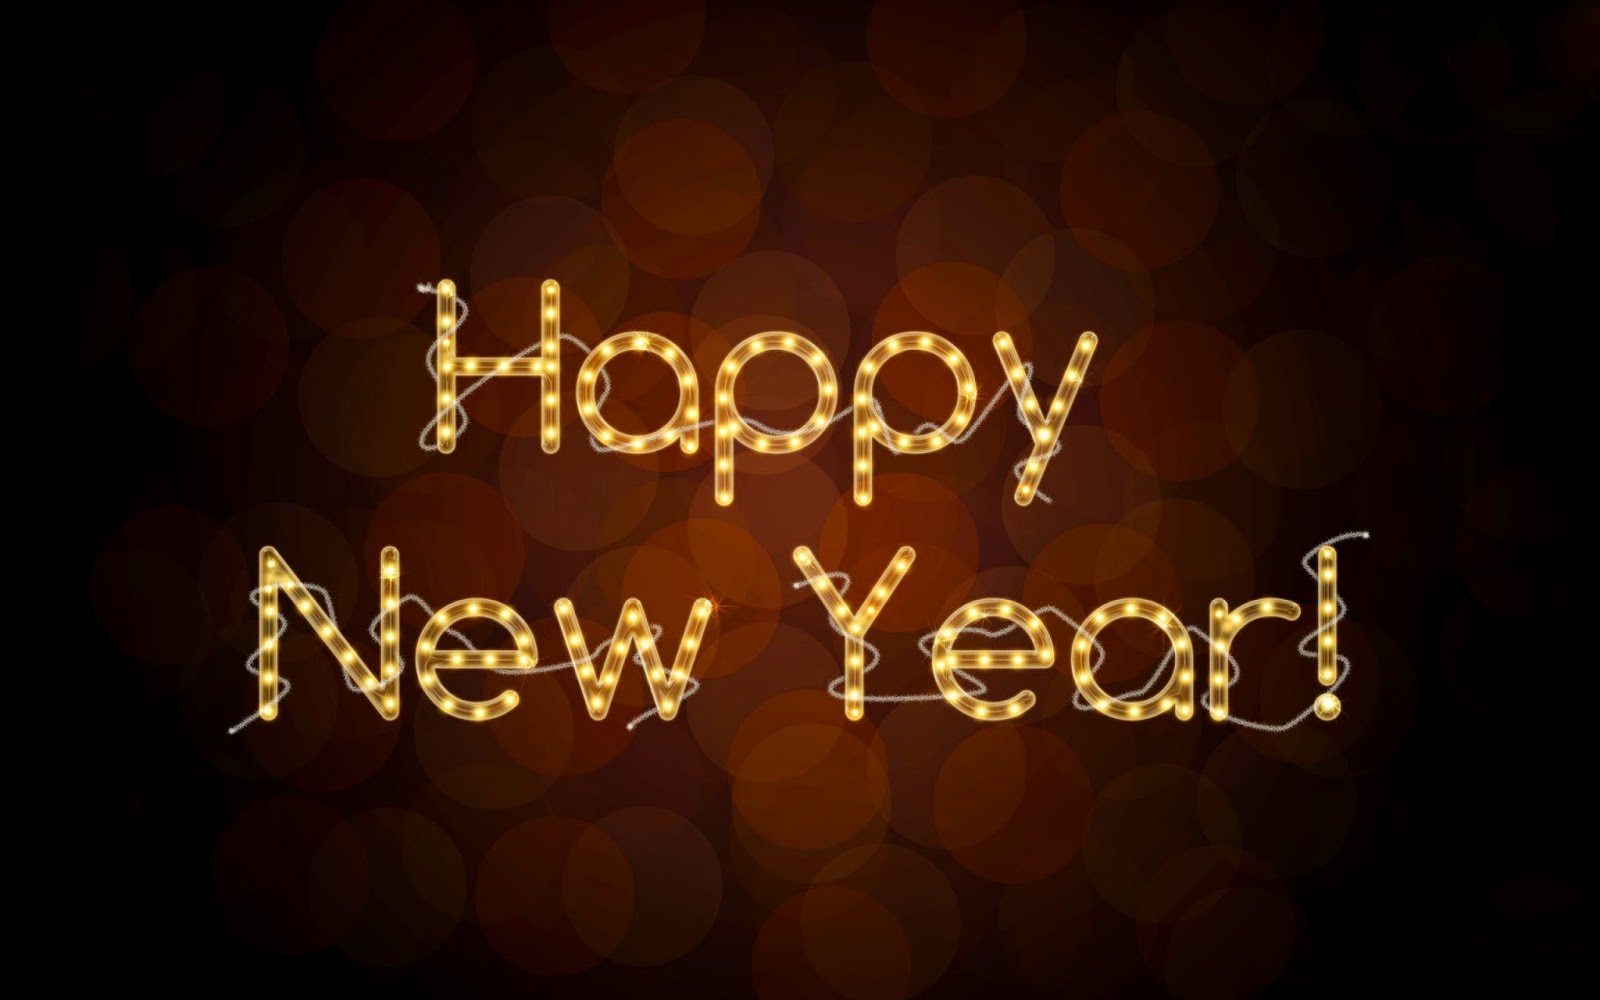 Saal mubarak message wishes quotes greetings images happy new year images saal mubarak greetings m4hsunfo